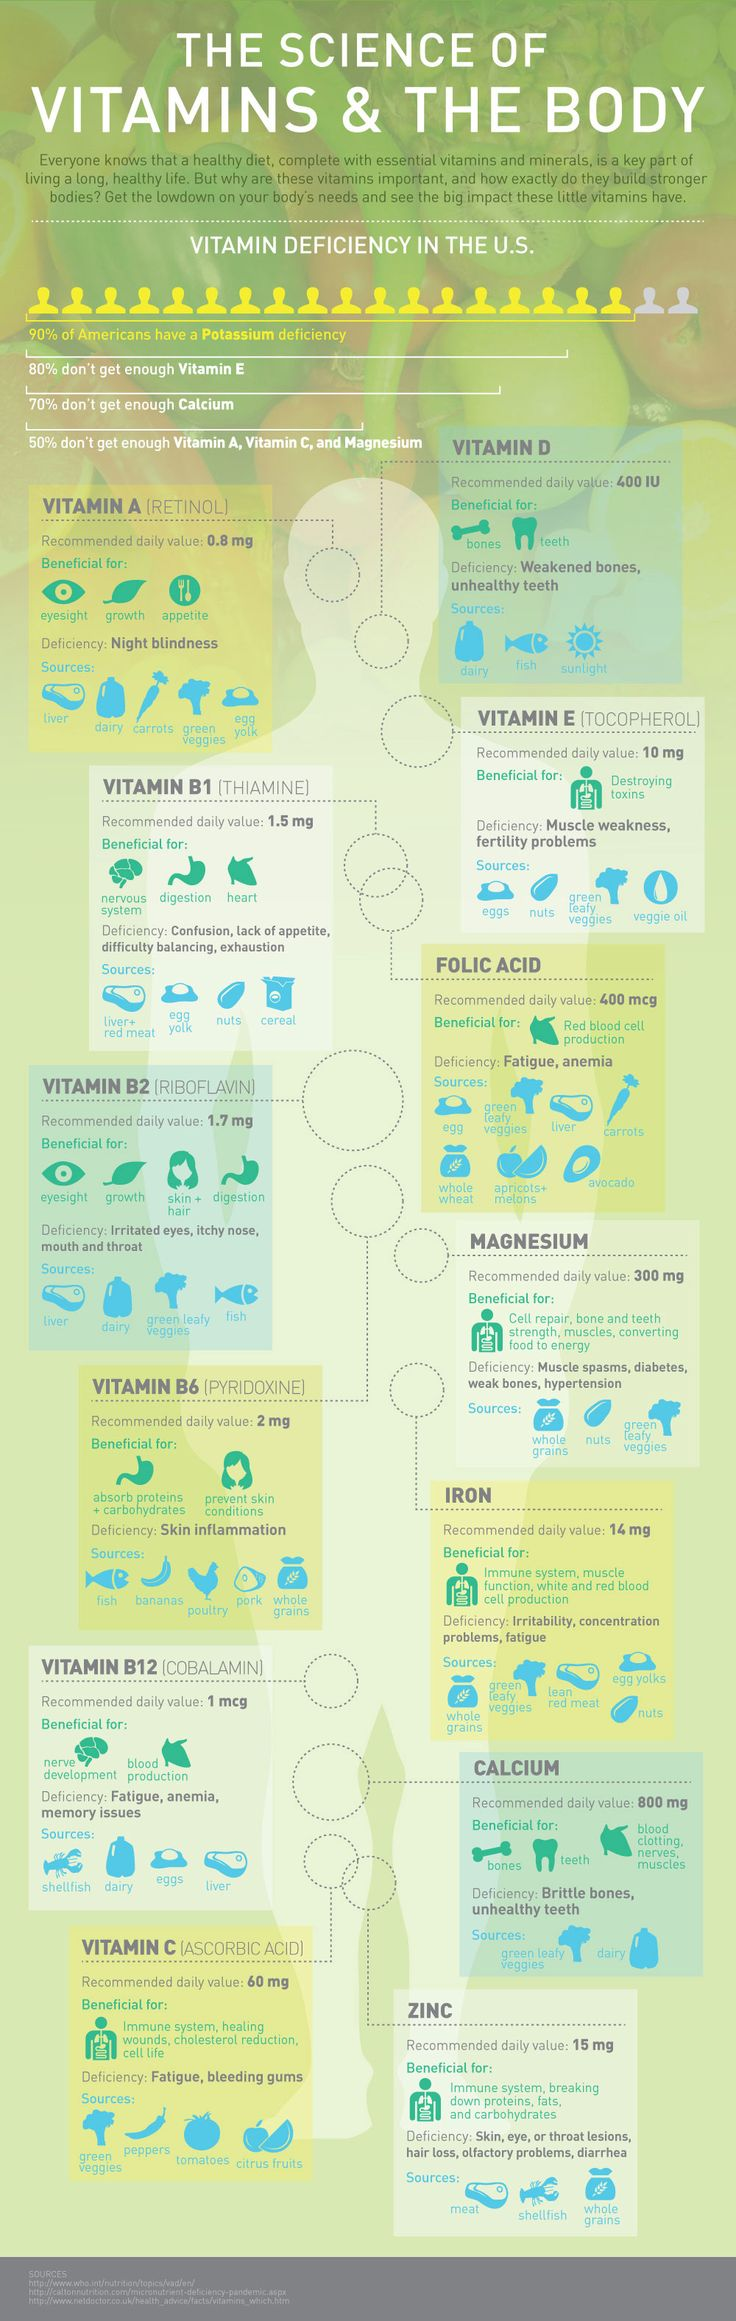 VVitamin Deficiency #Infographic